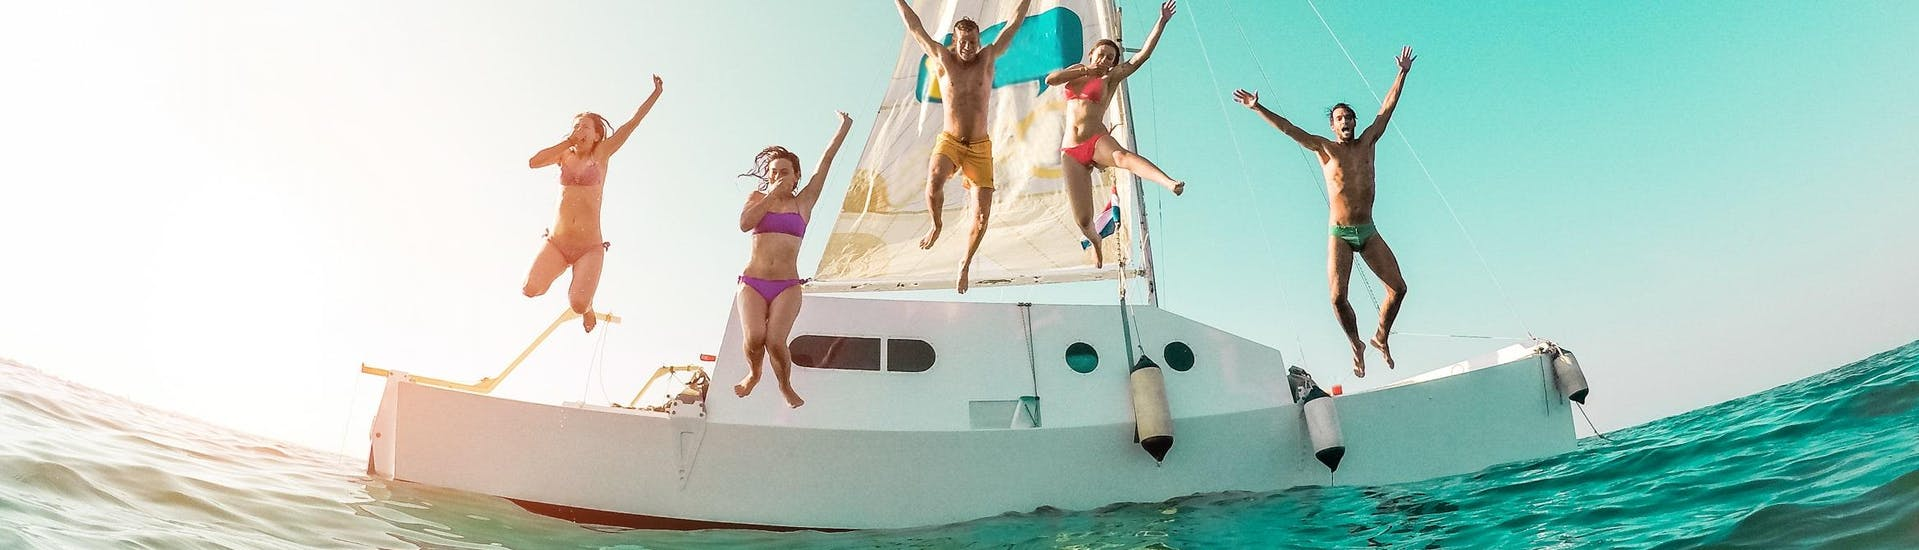 A group of friends is jumping into the sea during their boat trip in Ibiza.